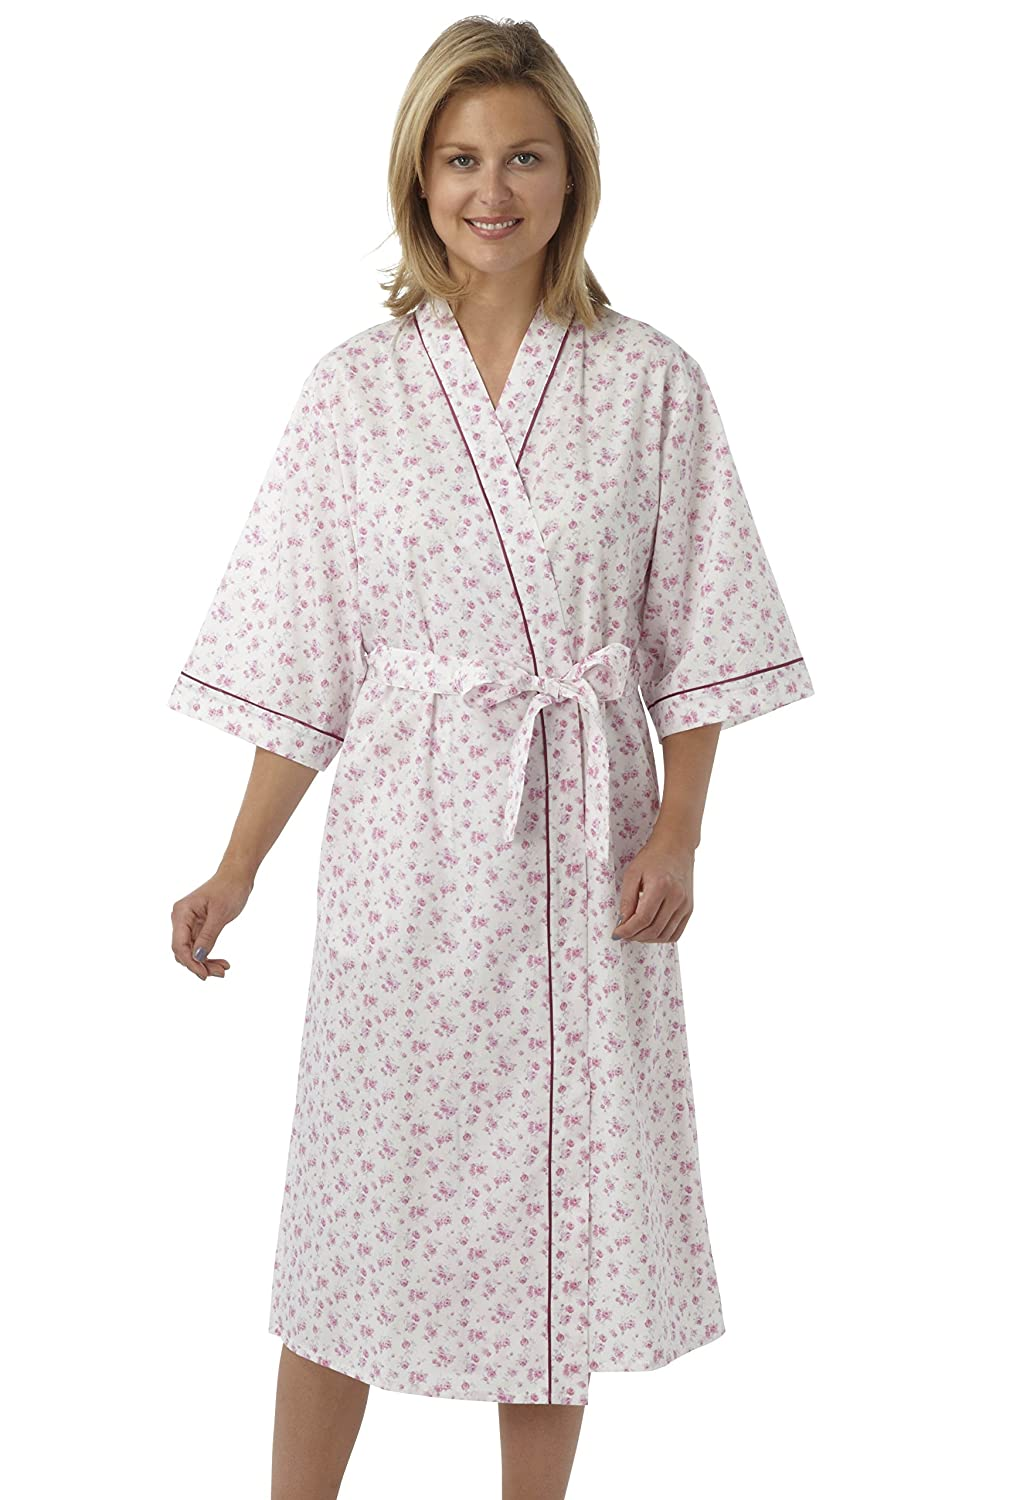 Ladies Poly/Cotton Kimono Style Wrapover Dressing Gown Pink Blue or ...